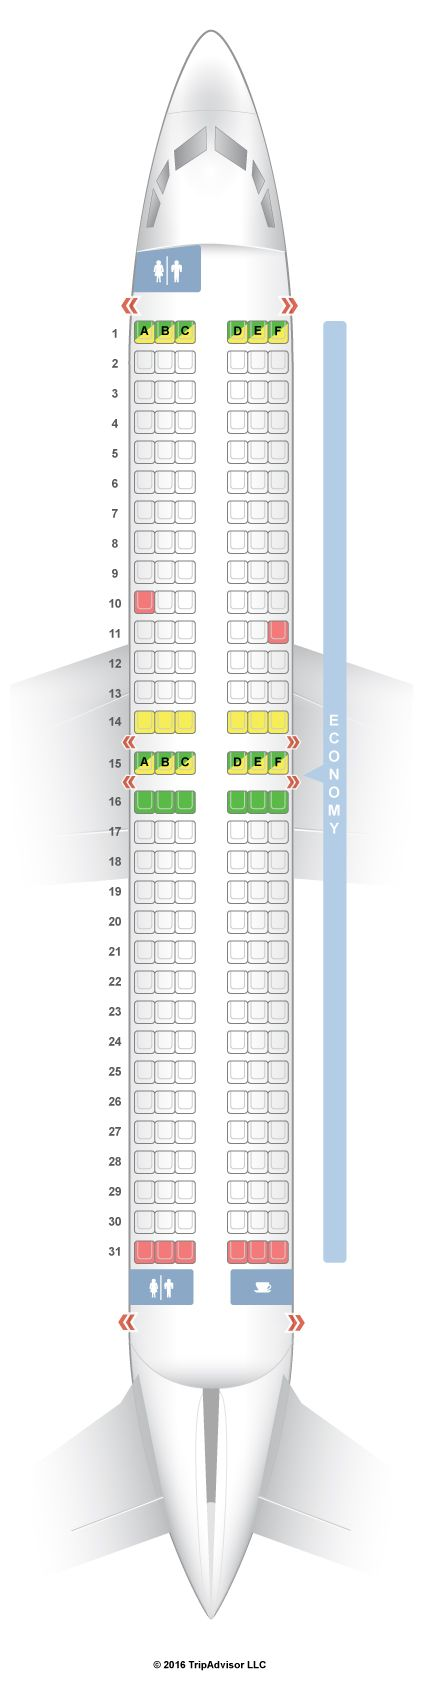 SeatGuru Seat Map Norwegian Boeing 737-800 (738) - SeatGuru